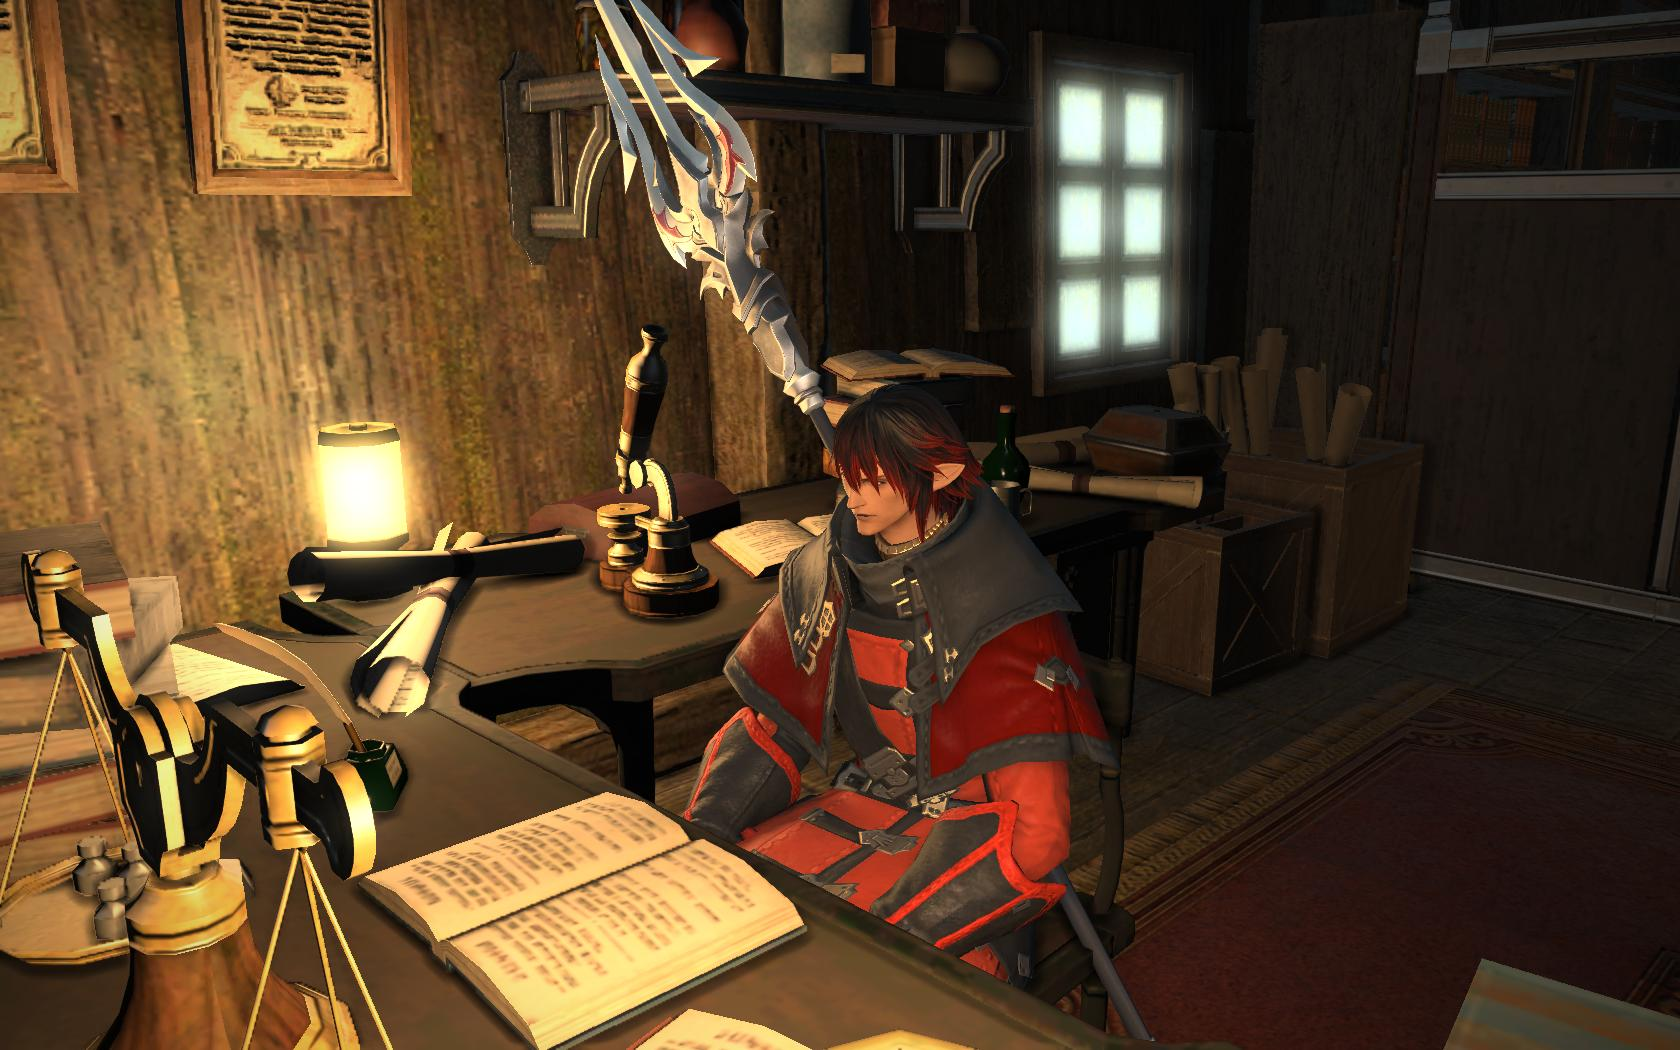 stromgarde ffxiv limsa through tonight well screenshots lifted phase beta